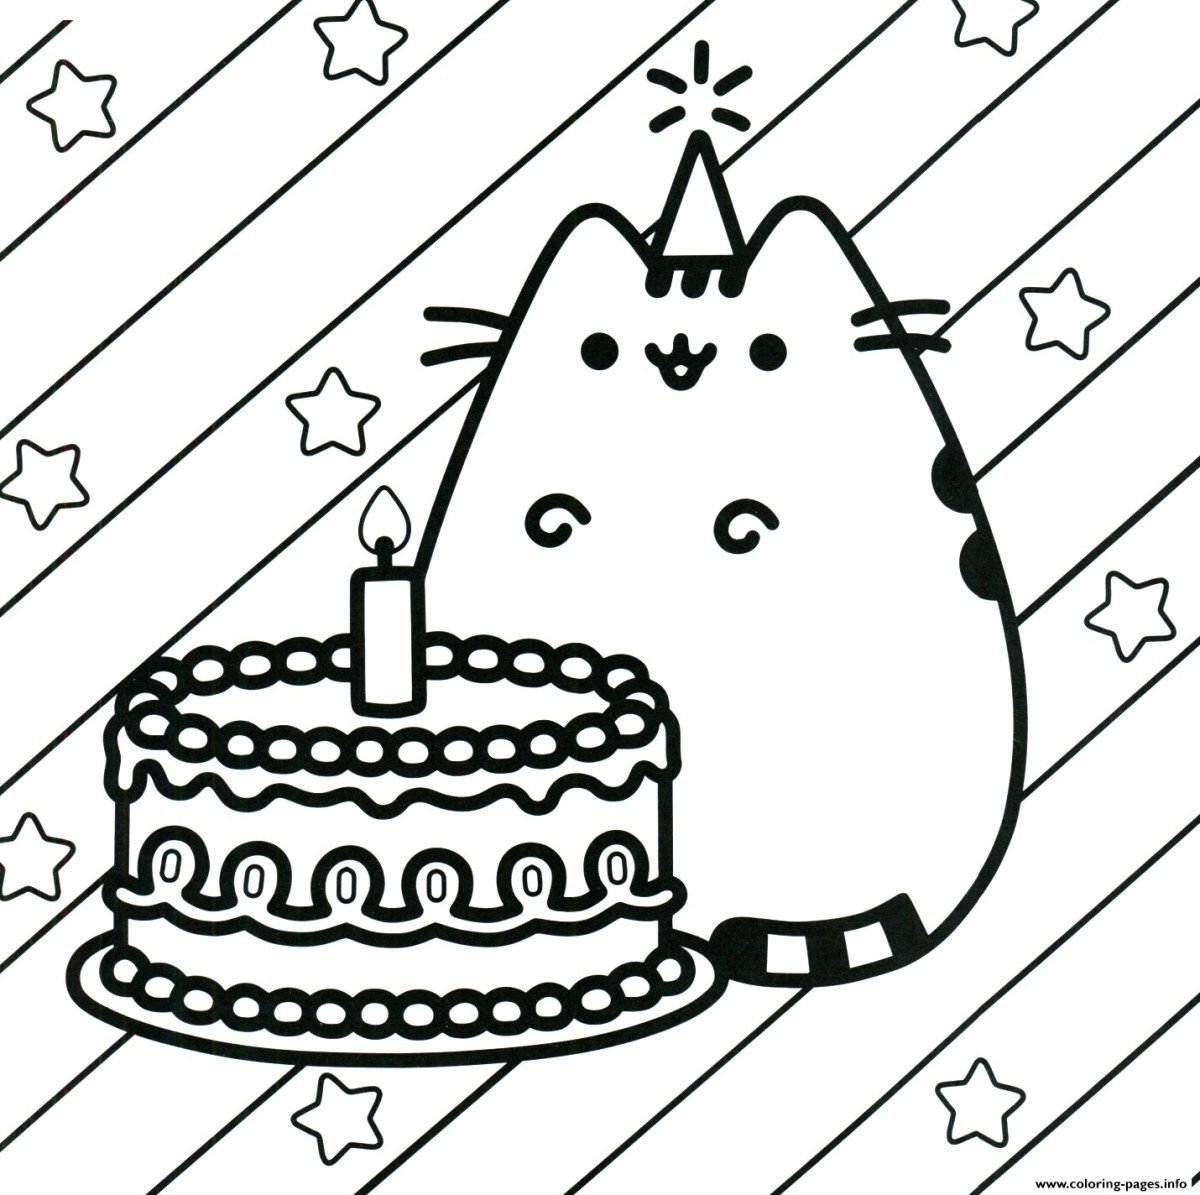 Printable Birthday Coloring Pages Pusheen Cake Happy Birthday Coloring Pages Printable Entitlementtrap Com Birthday Coloring Pages Happy Birthday Coloring Pages Unicorn Coloring Pages